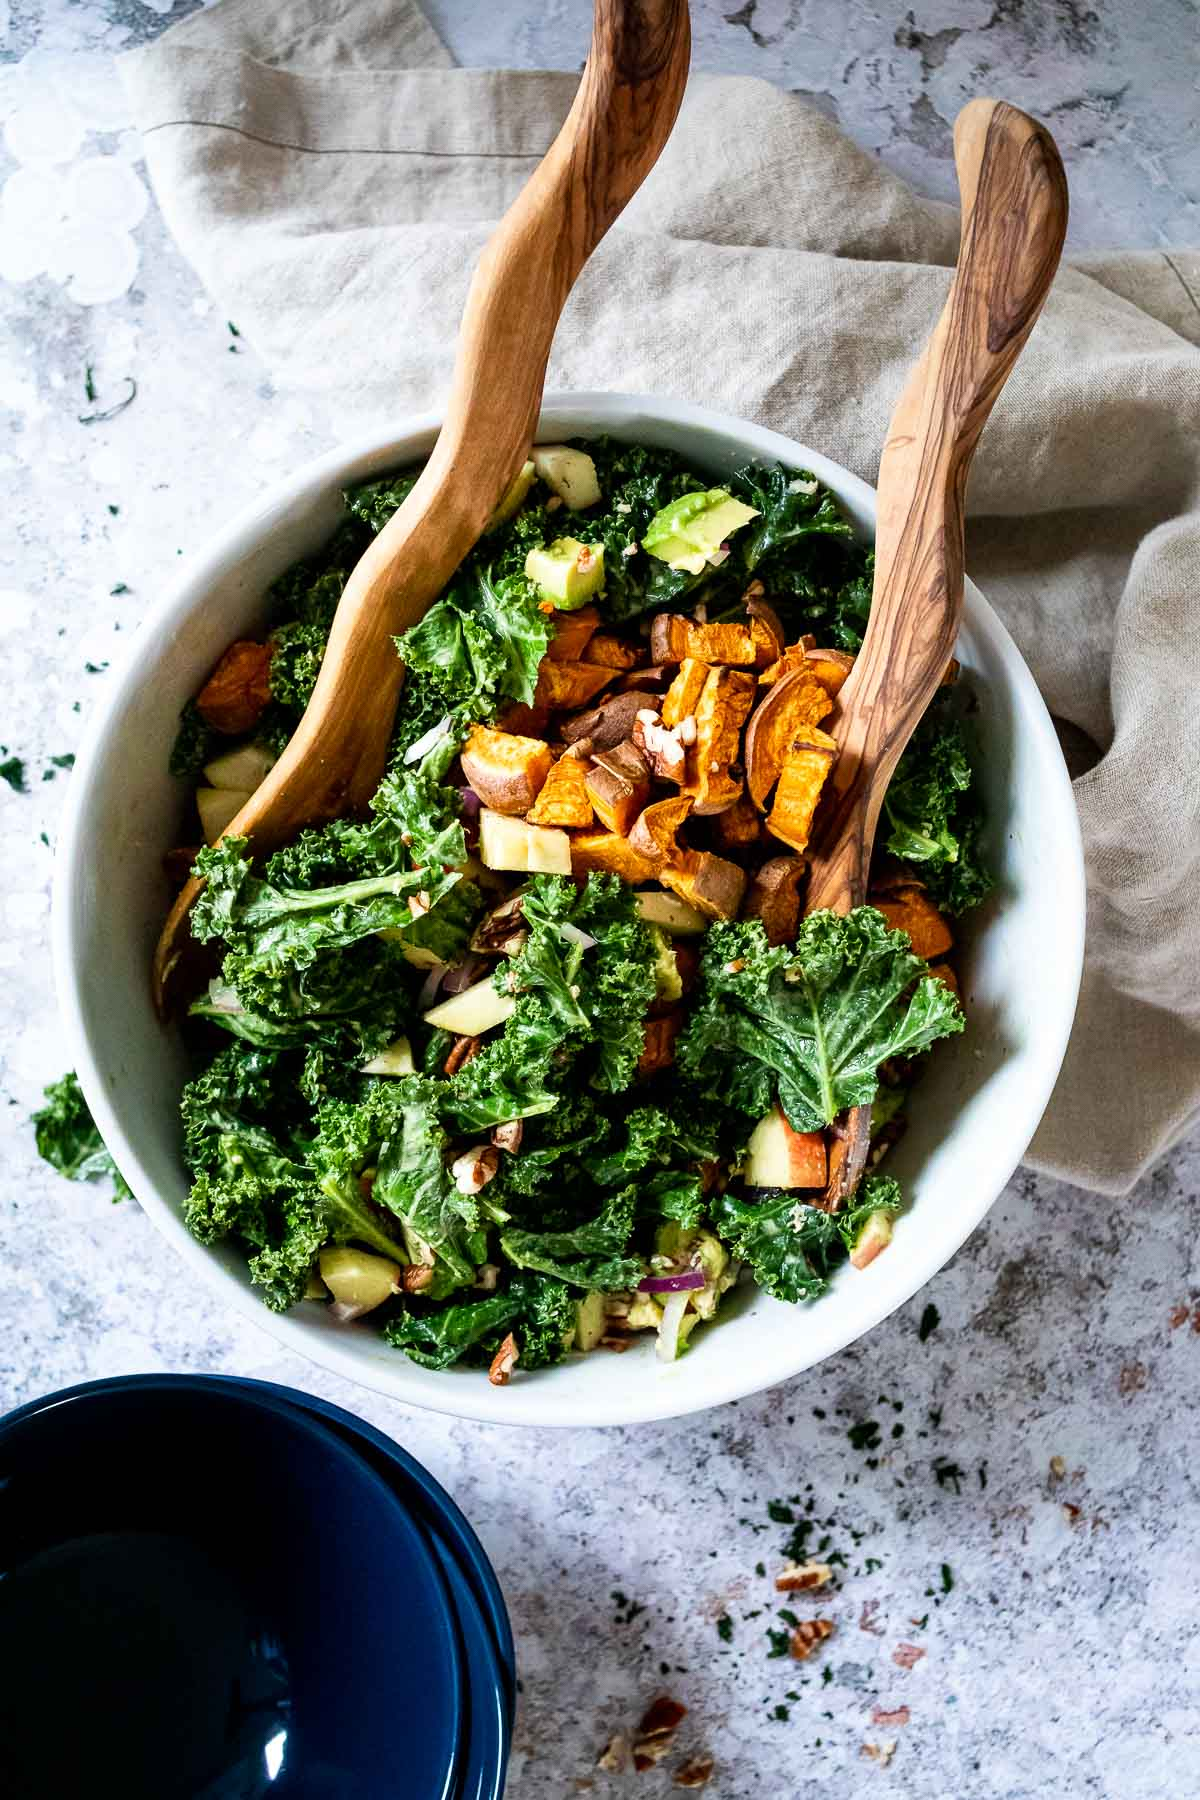 Bird View of a big bowl of oil free kale salad